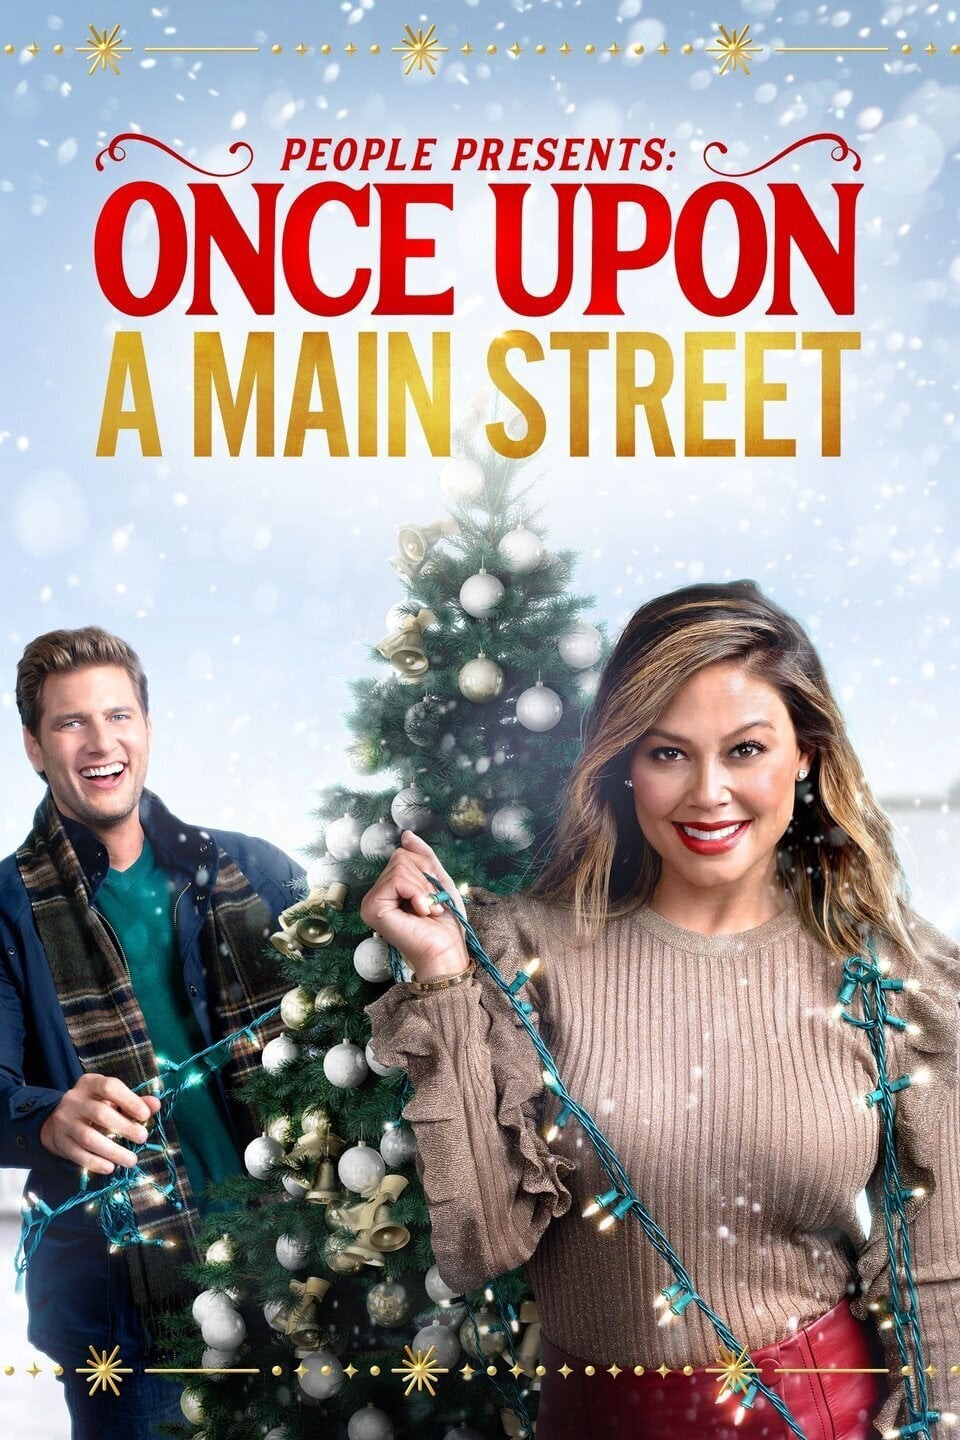 """Movie poster for People's Once Upon a Mainstream on Lifetime, released November 29th, 2020. The poster features Vanessa Lachey in a beige ribbed sweater, red pants, and red lipstick in the foreground holding white tree lights with Ryan McPartlin in a green shirt, blue jacket, and striped scarf holding the same strand of lights in the background. The are standing in front of a Christmas tree with silver and gold ornaments outside and it's snowing. The image is overlaid with the words """"People Presents: Once Upon A Main Street."""" Flavorlab Sound provided full service audio post production for the film."""